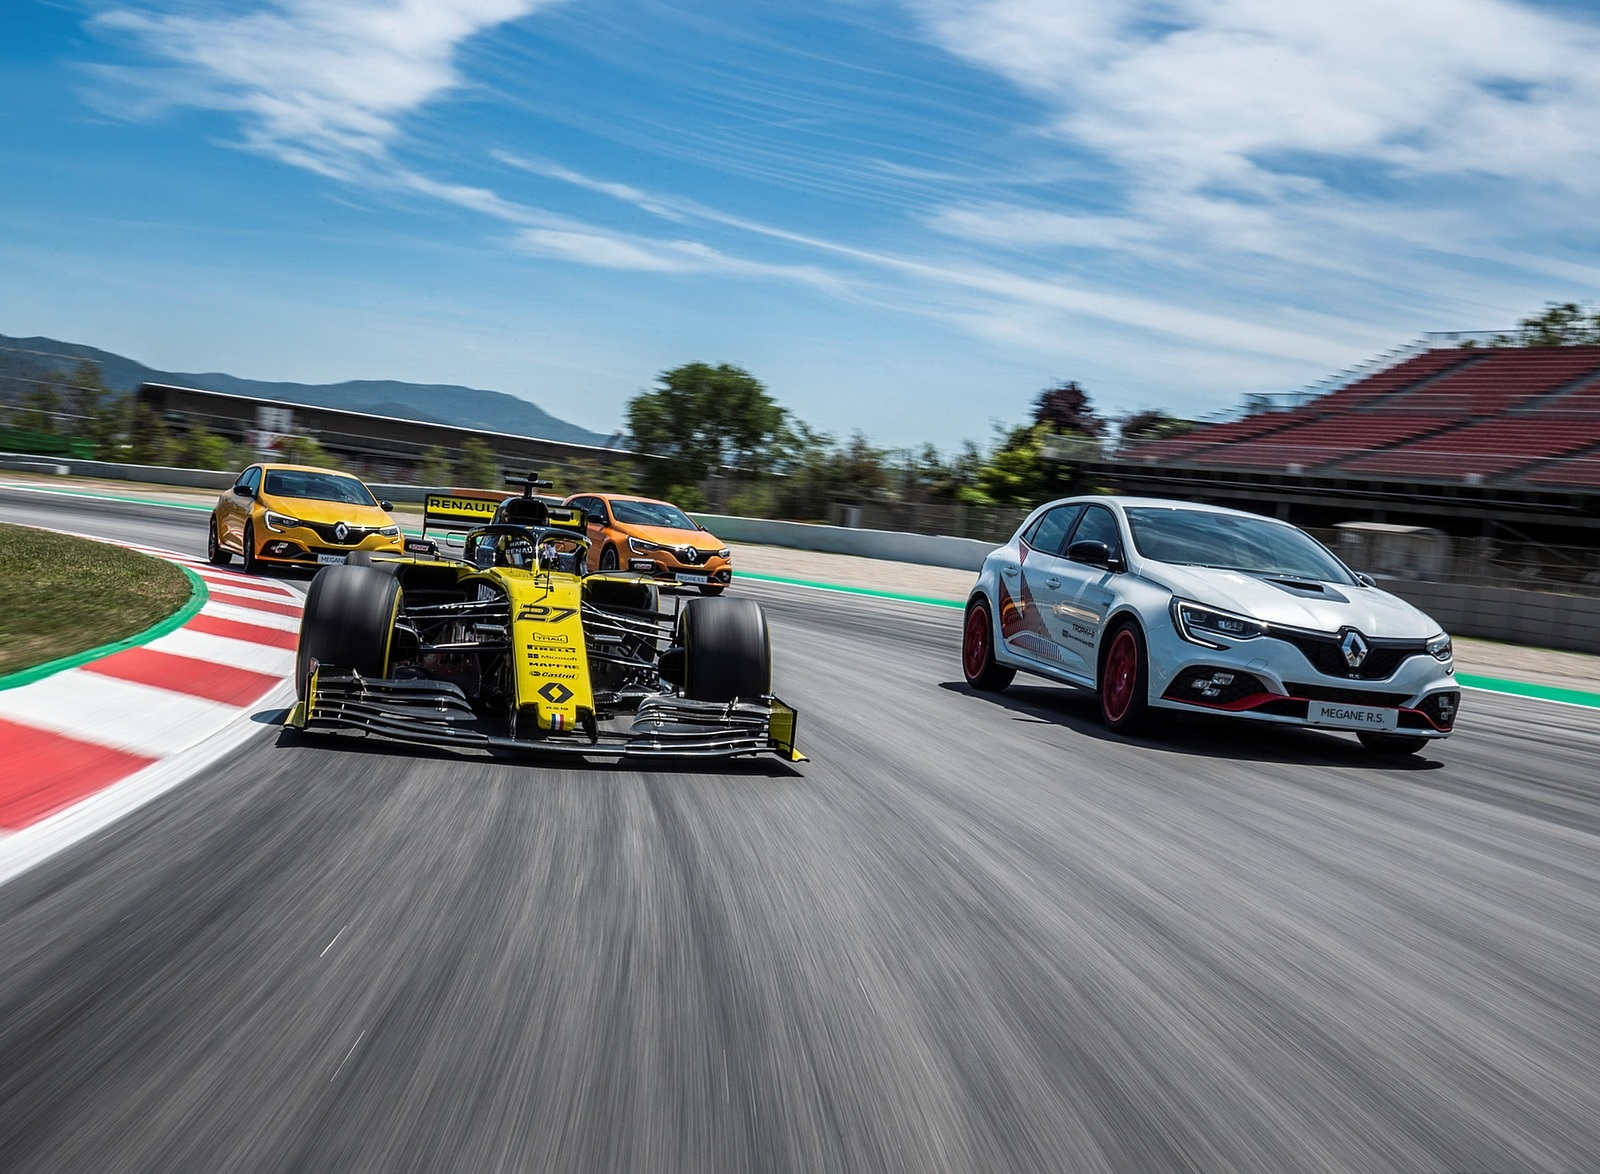 2020 Renault Mégane R.S. Trophy-R and R.S. 19 Formula One Car Wallpapers (12)